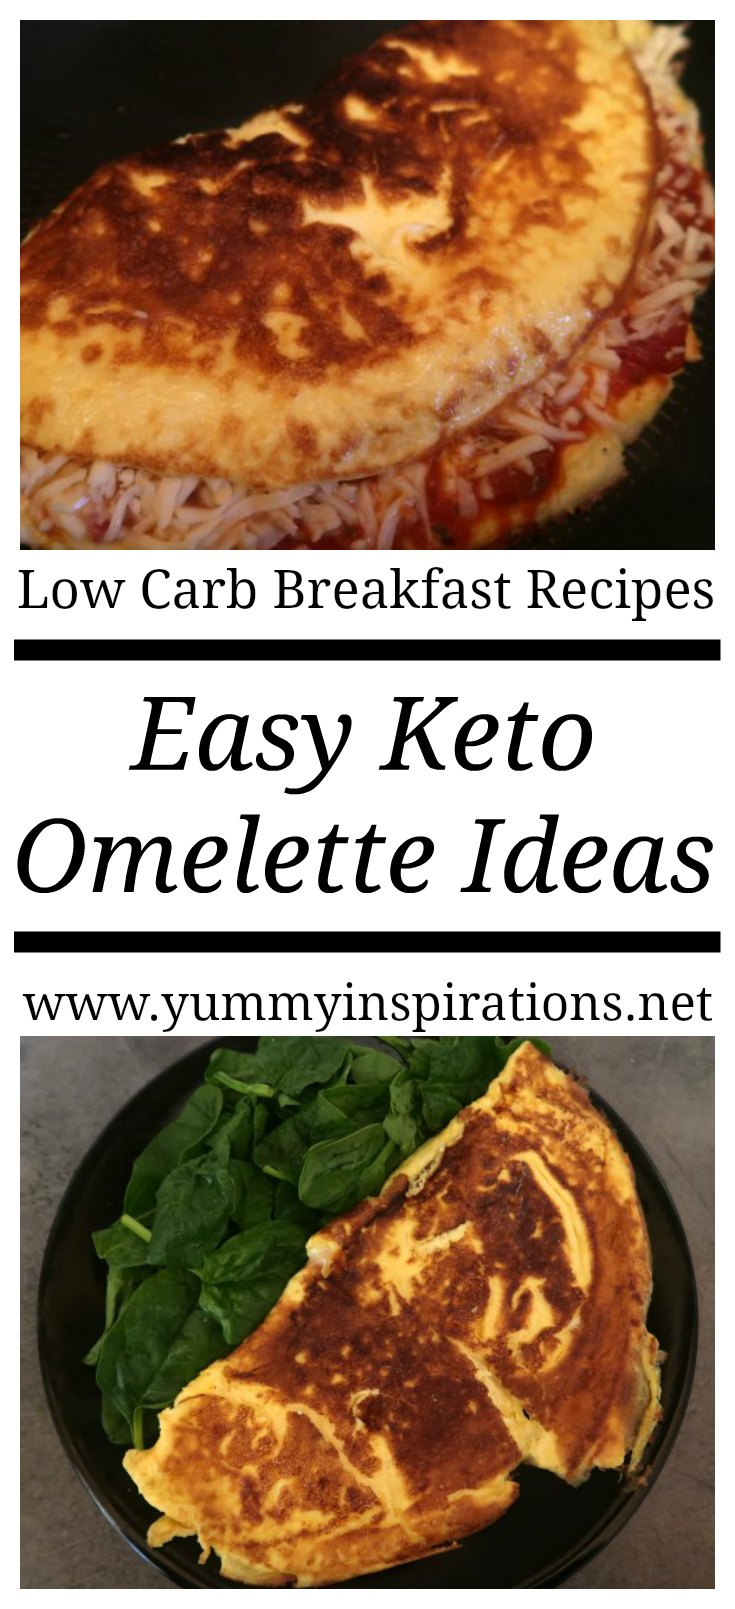 Keto Omelette Ideas - low carb vegetarian breakfast omelette fillings including mushrooms, cheese, asparagus and more easy options.